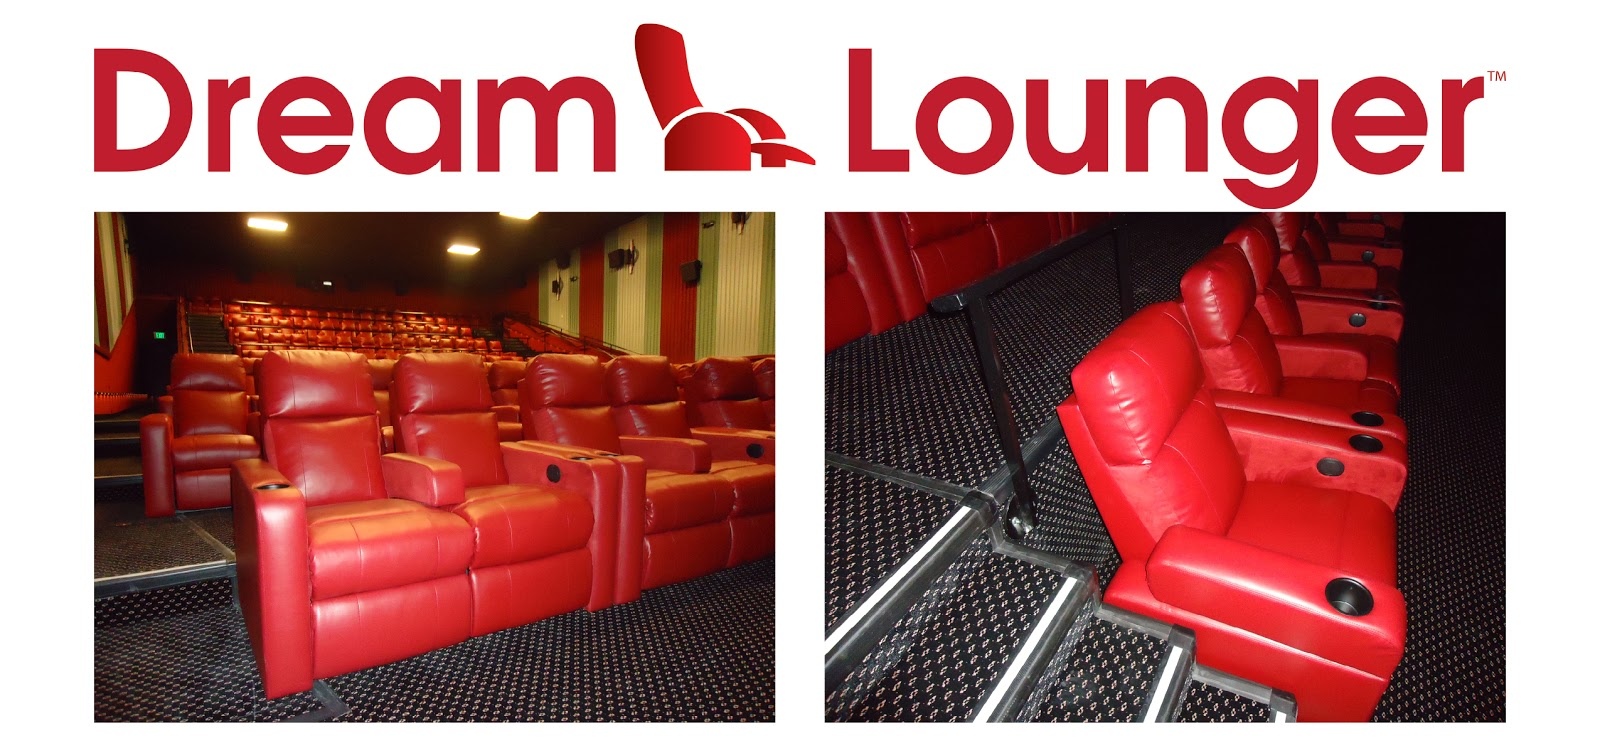 View movie showtimes and purchase movie tickets online for Marcus Theatres featuring in-theatre dining, latest theater tech and dream lounger seating.